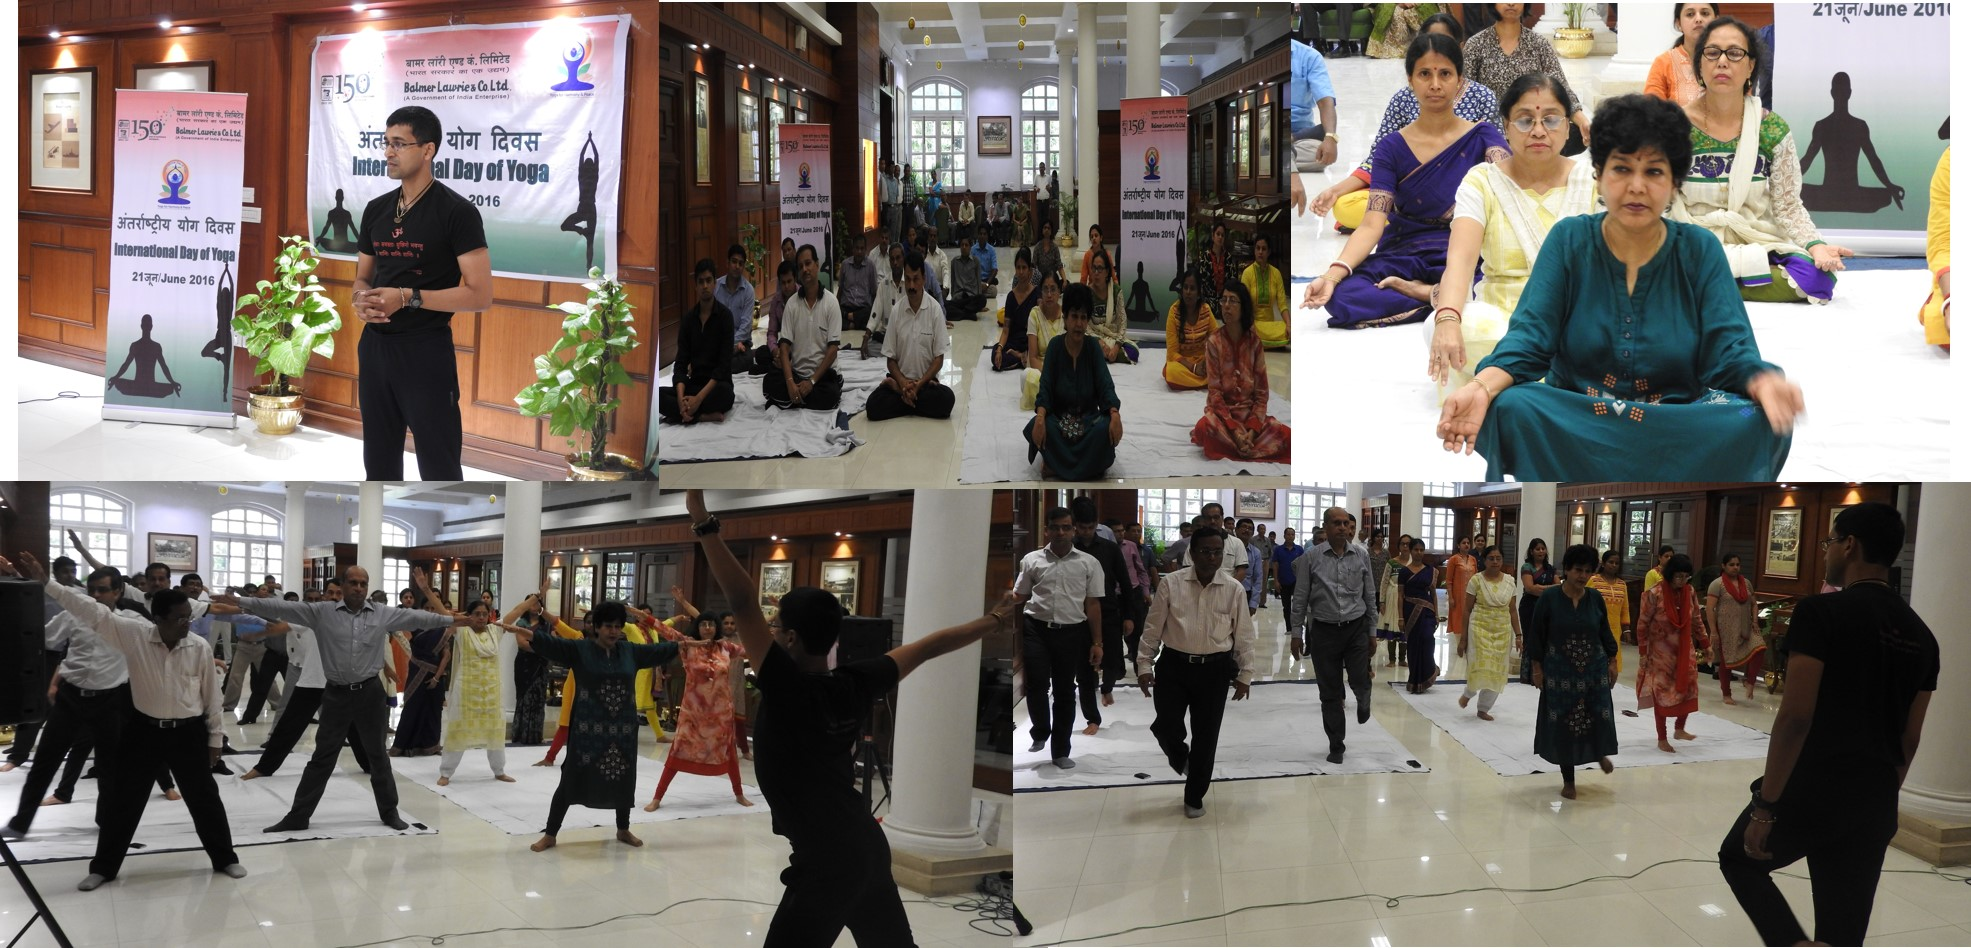 international day of yoga  besides yoga sessions numerous programmes like essay quiz and poster competitions around the theme of yoga were organized for the employees